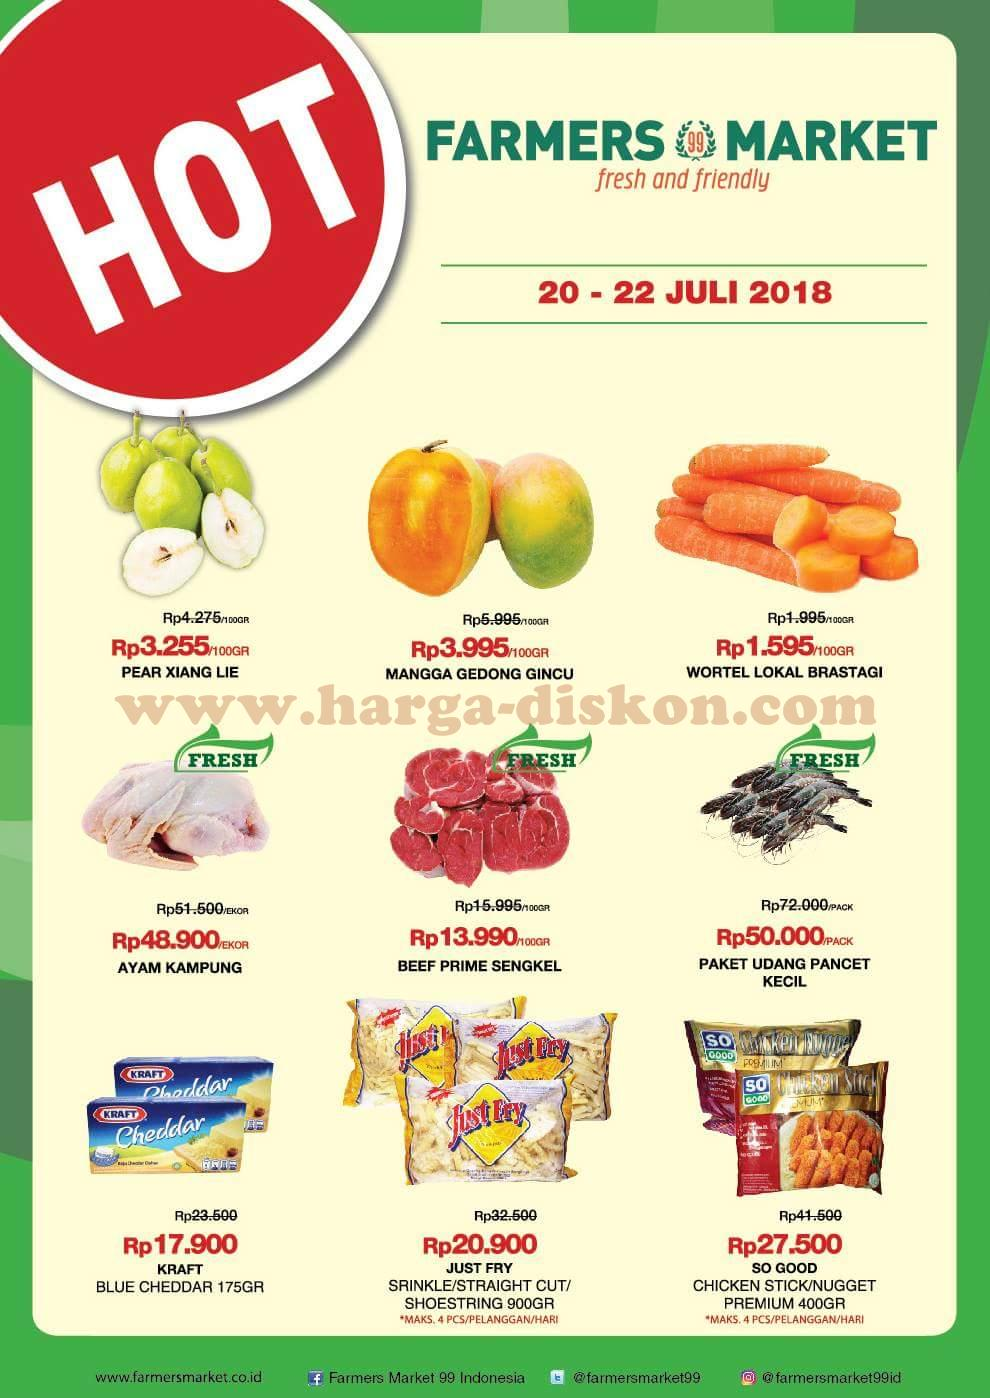 Promo Farmers Market Katalog Jsm Akhir Pekan 20 22 Juli 2018 News And Talking